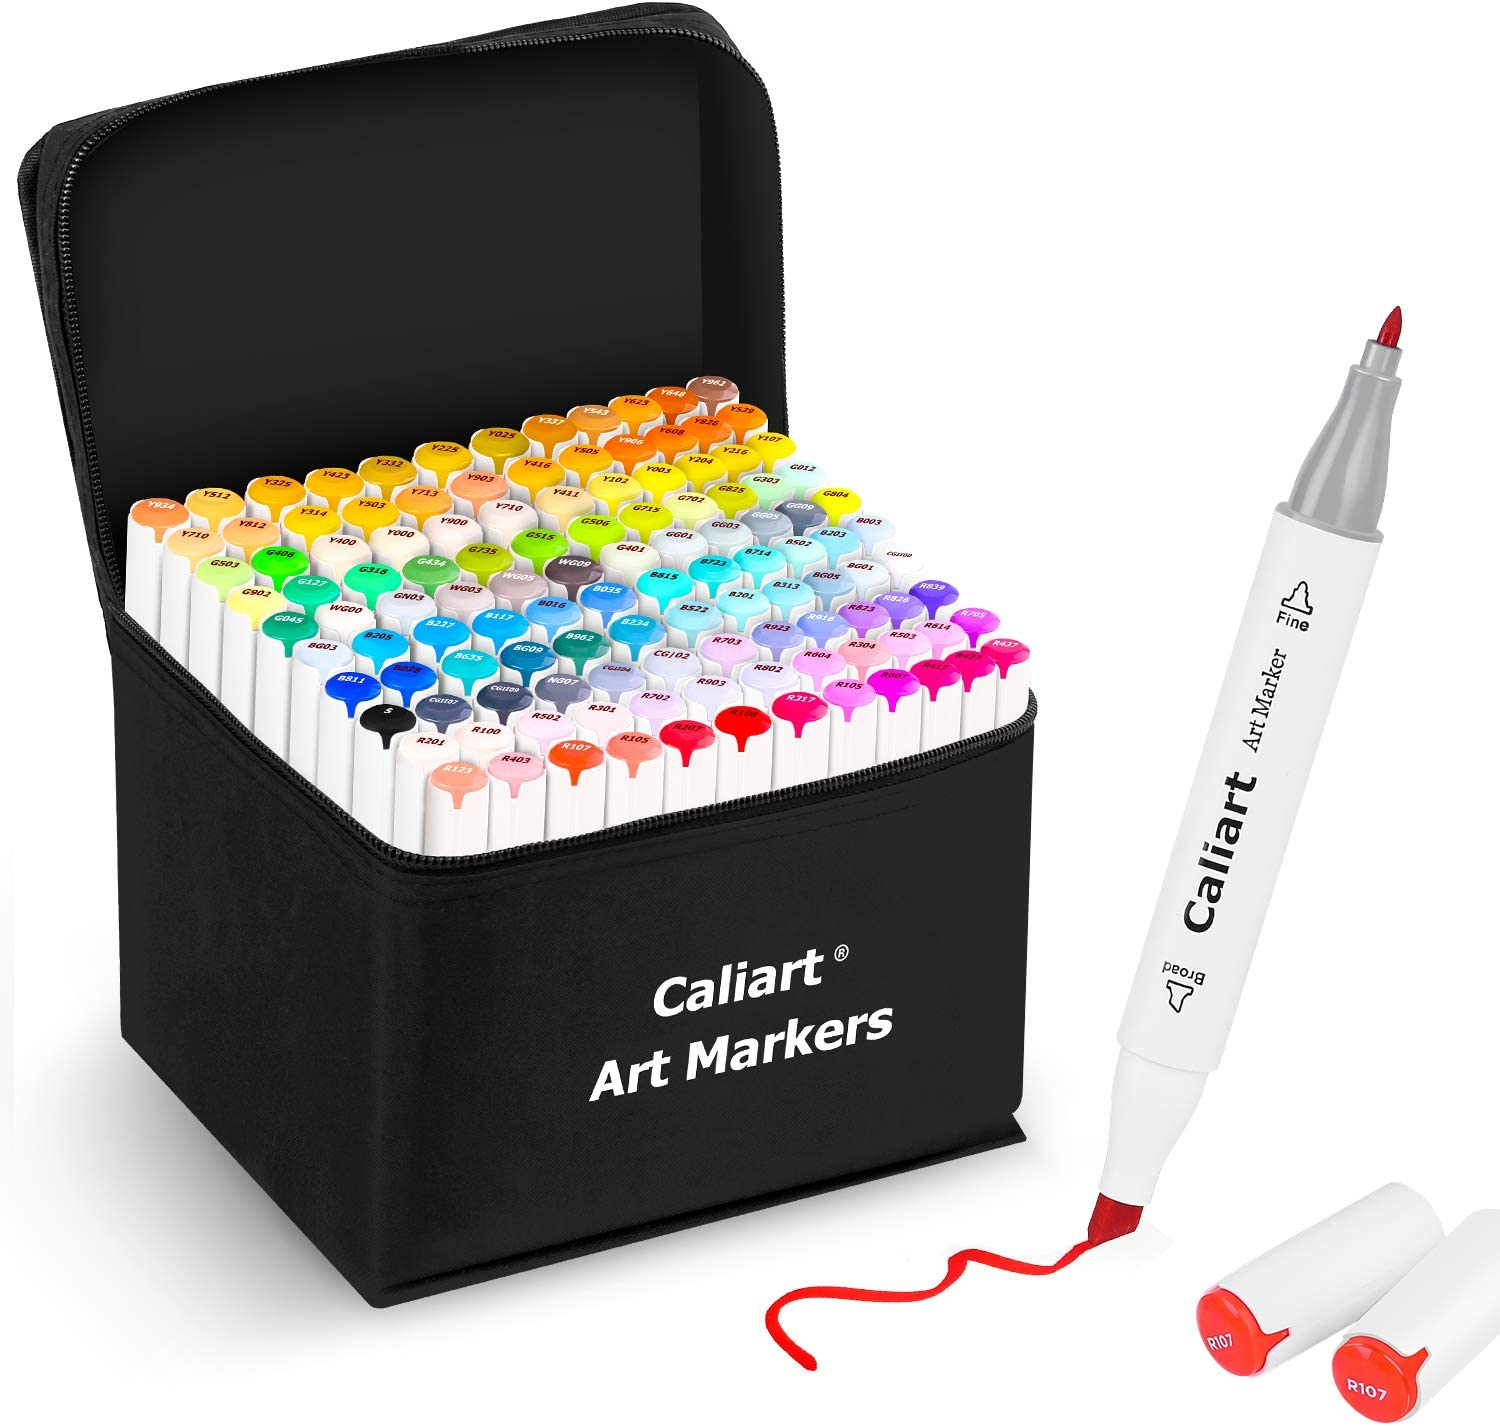 Caliart 121 Colors Artist Alcohol Markers Dual Tip Art Markers Twin Sketch Markers Pens Permanent Alcohol Based Markers with Case for Adult Kids Coloring Drawing Sketching Card Making Illustration